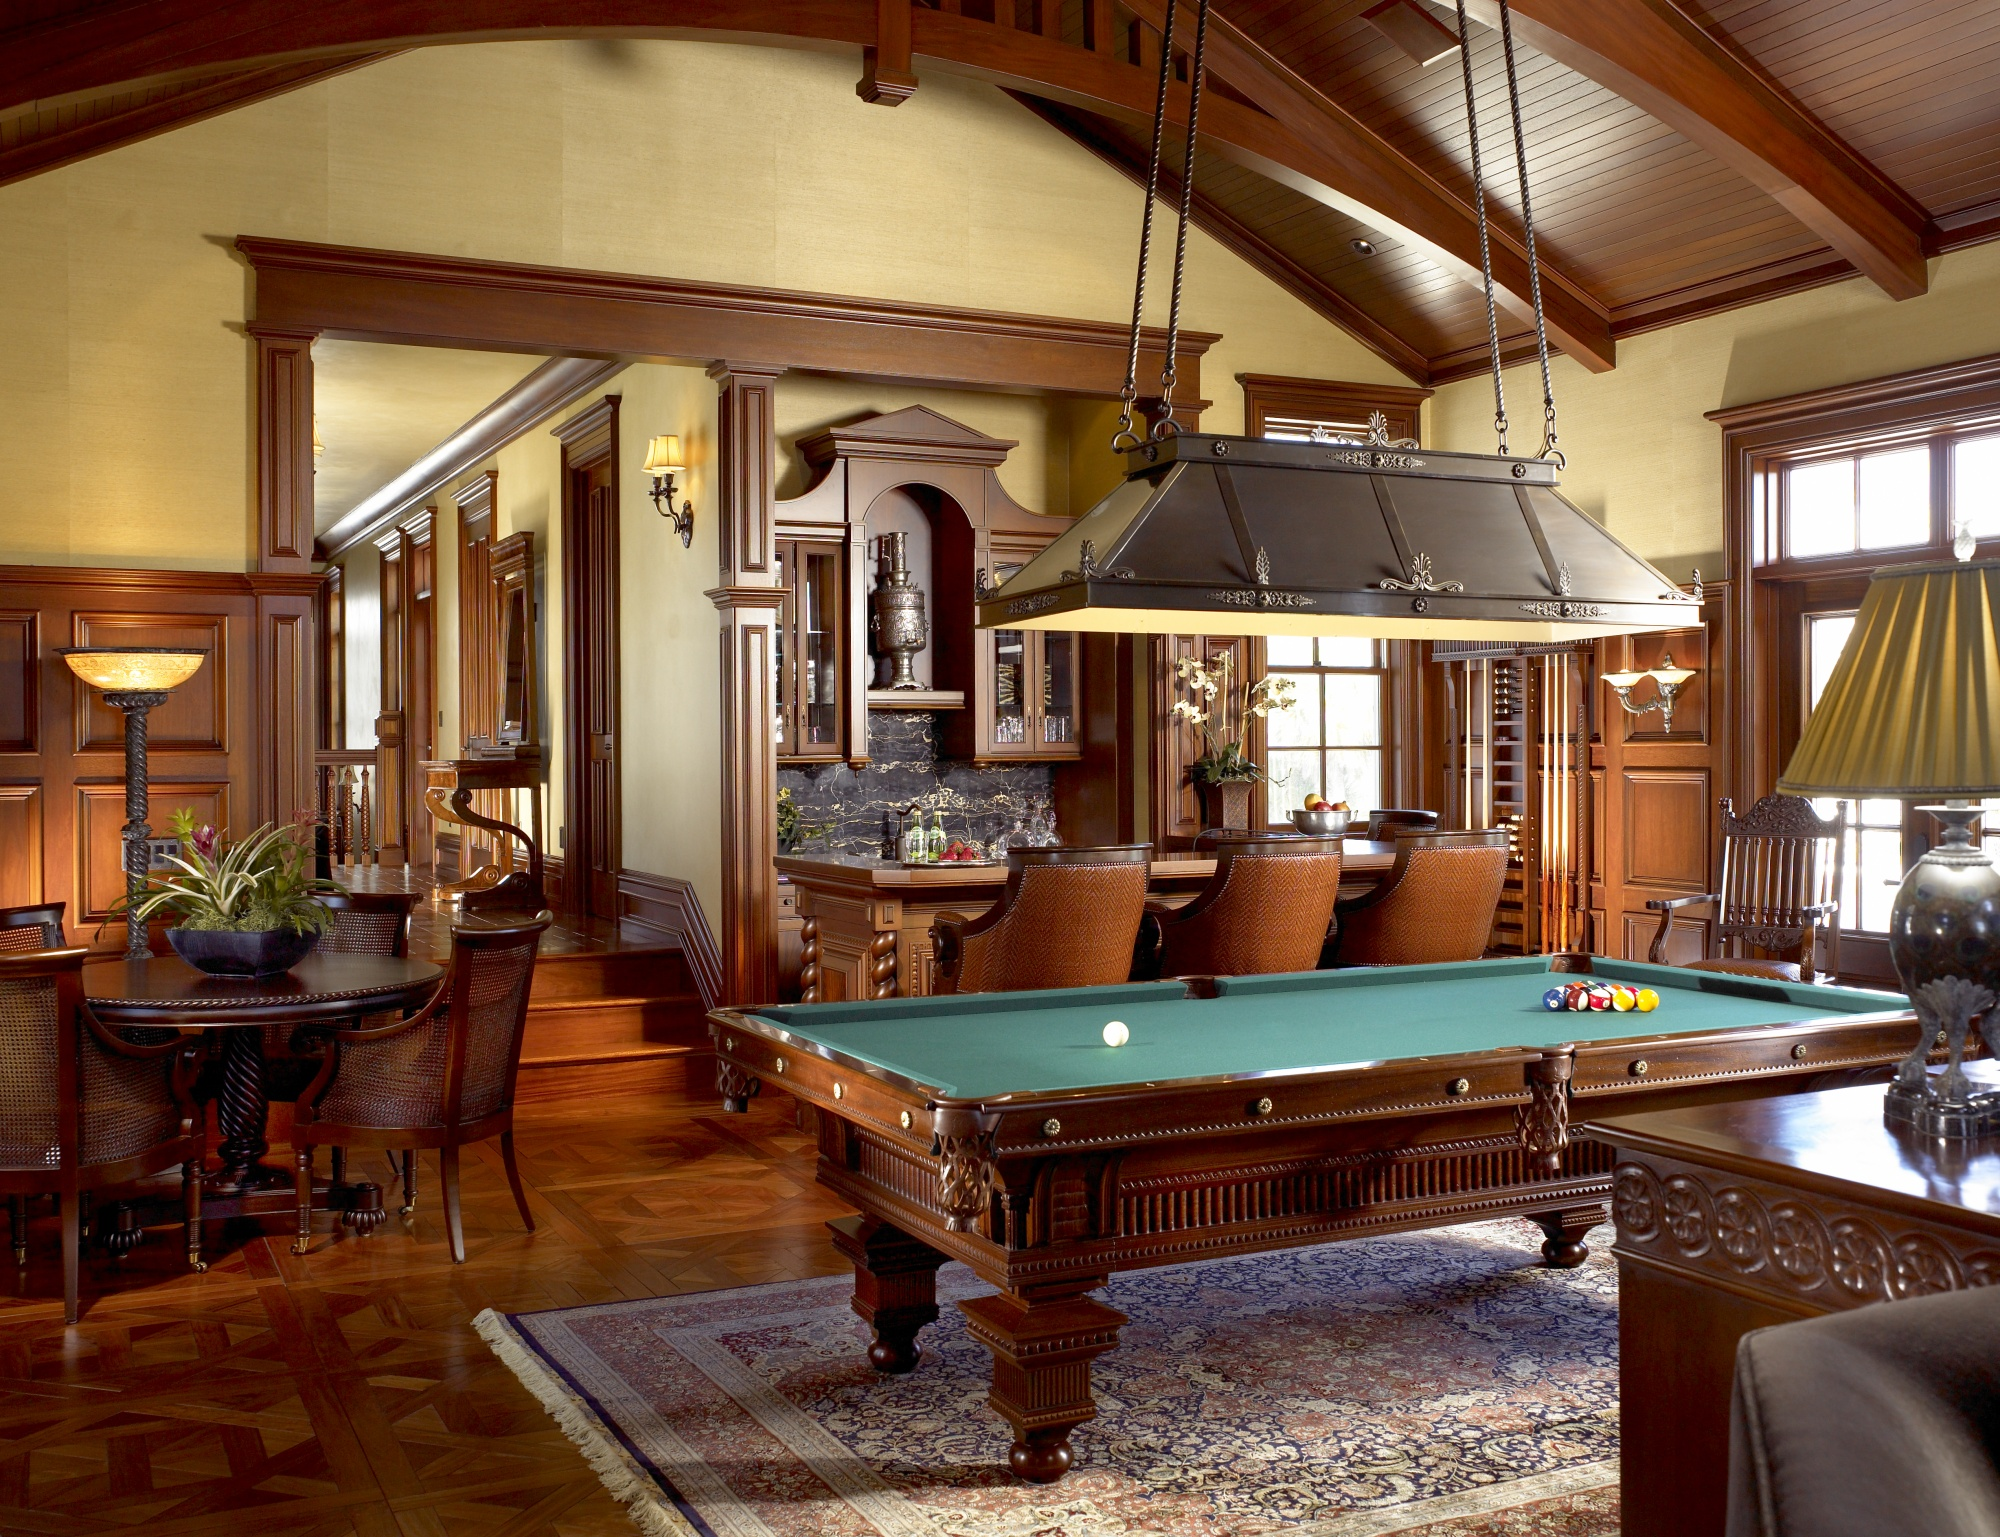 1890's pool table is featured in the adults playroom.